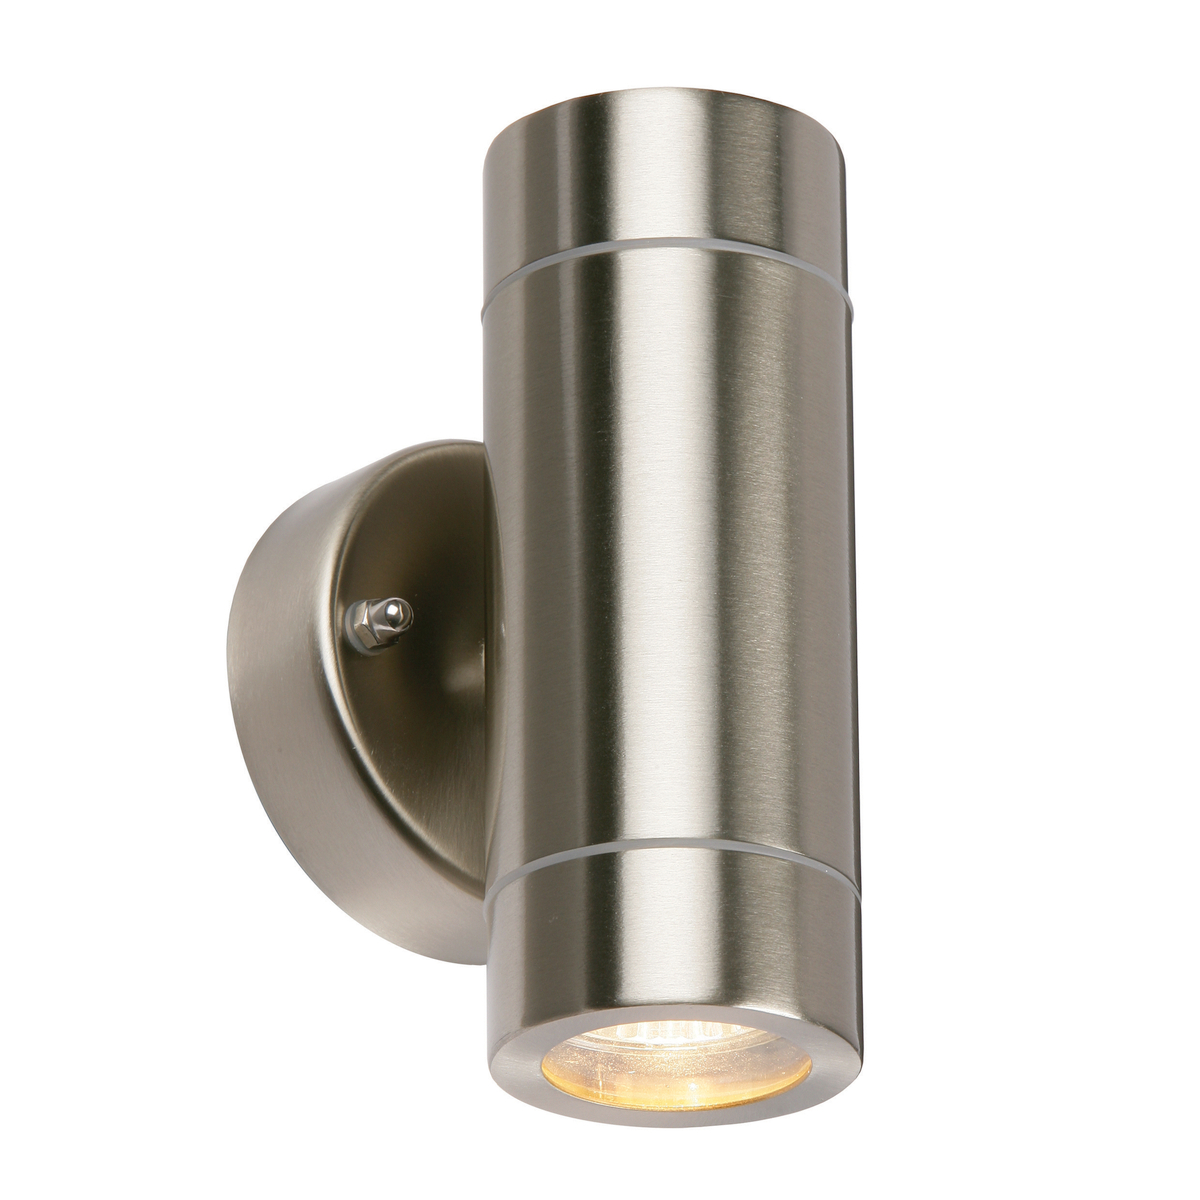 modern stainless steel up down gu10 led ip44 dimmable outdoor garden wall light ebay. Black Bedroom Furniture Sets. Home Design Ideas